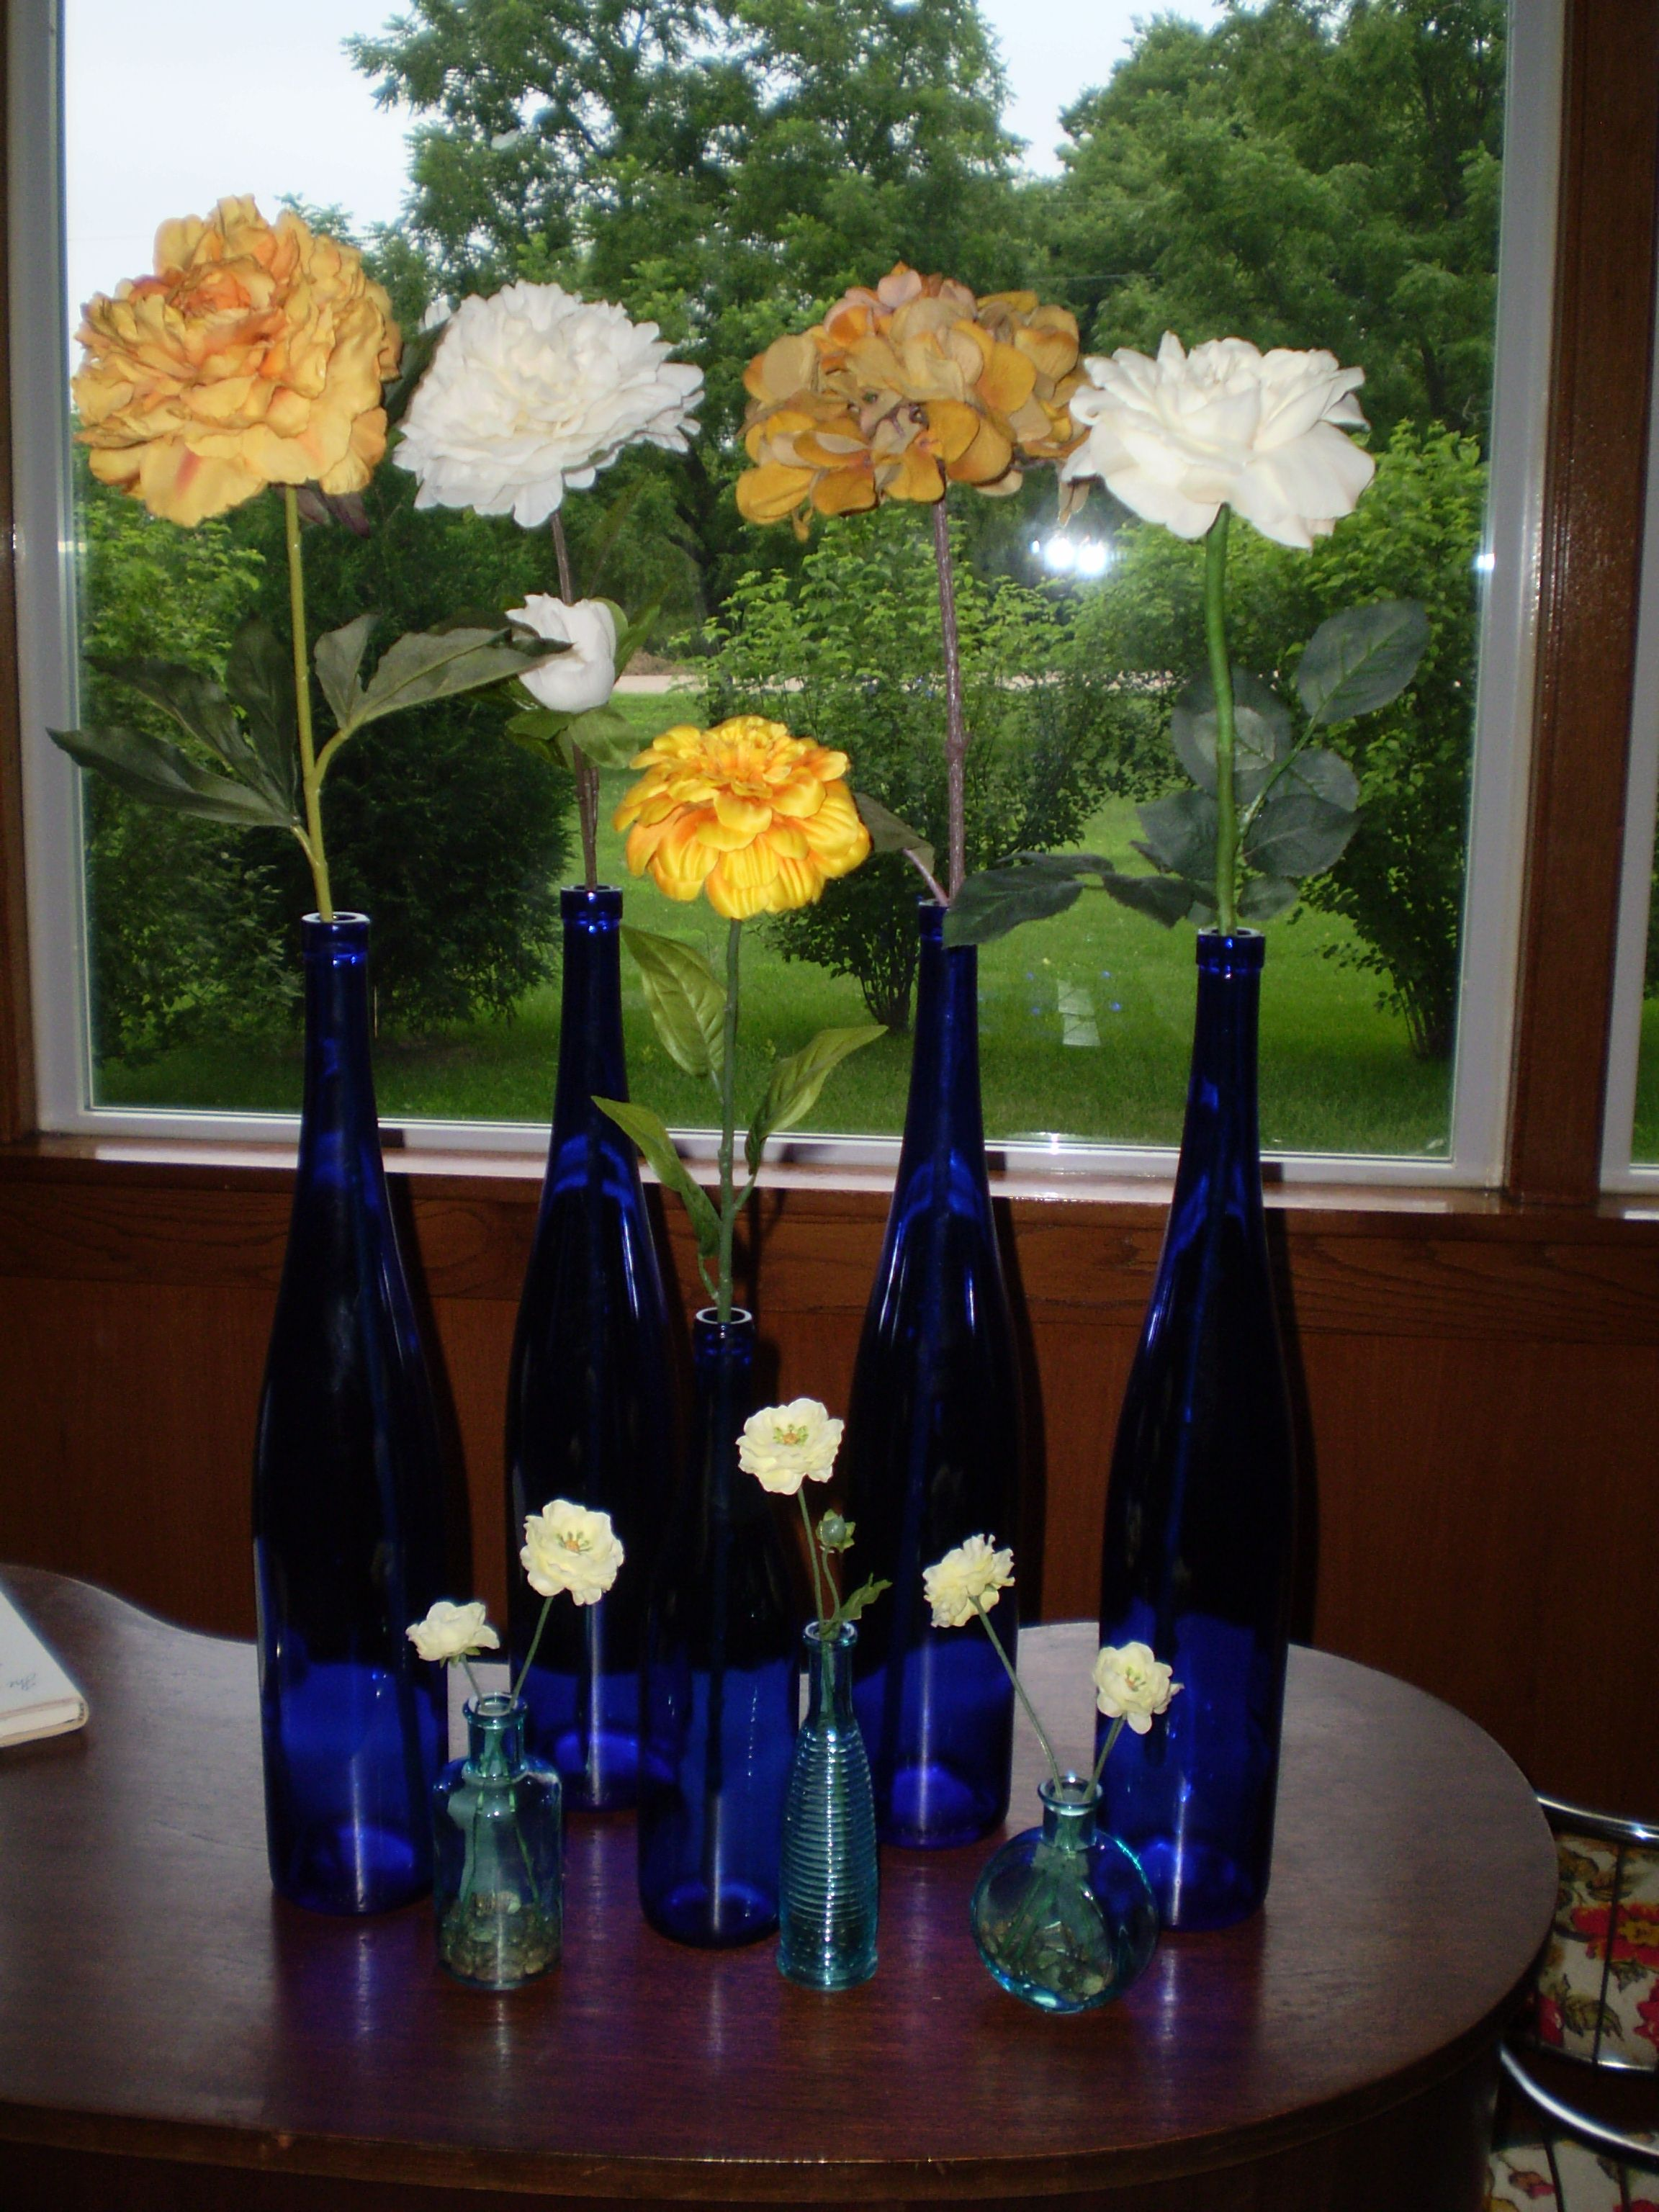 Blue Wine Bottles With Single Flowers Concept Not Execution I Think Trader Joes